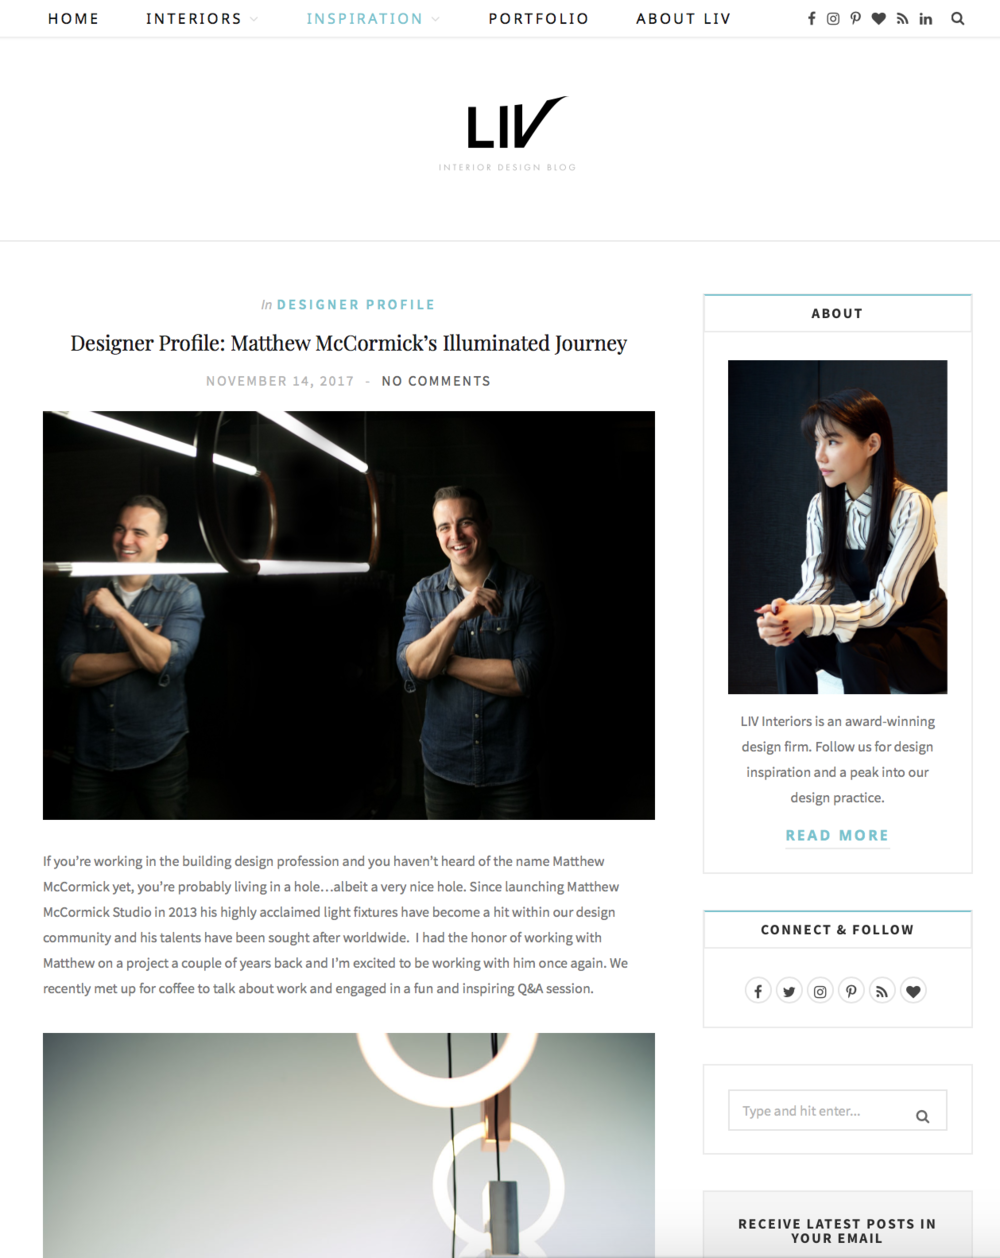 LIV Interior Design Blog November 14, 2017